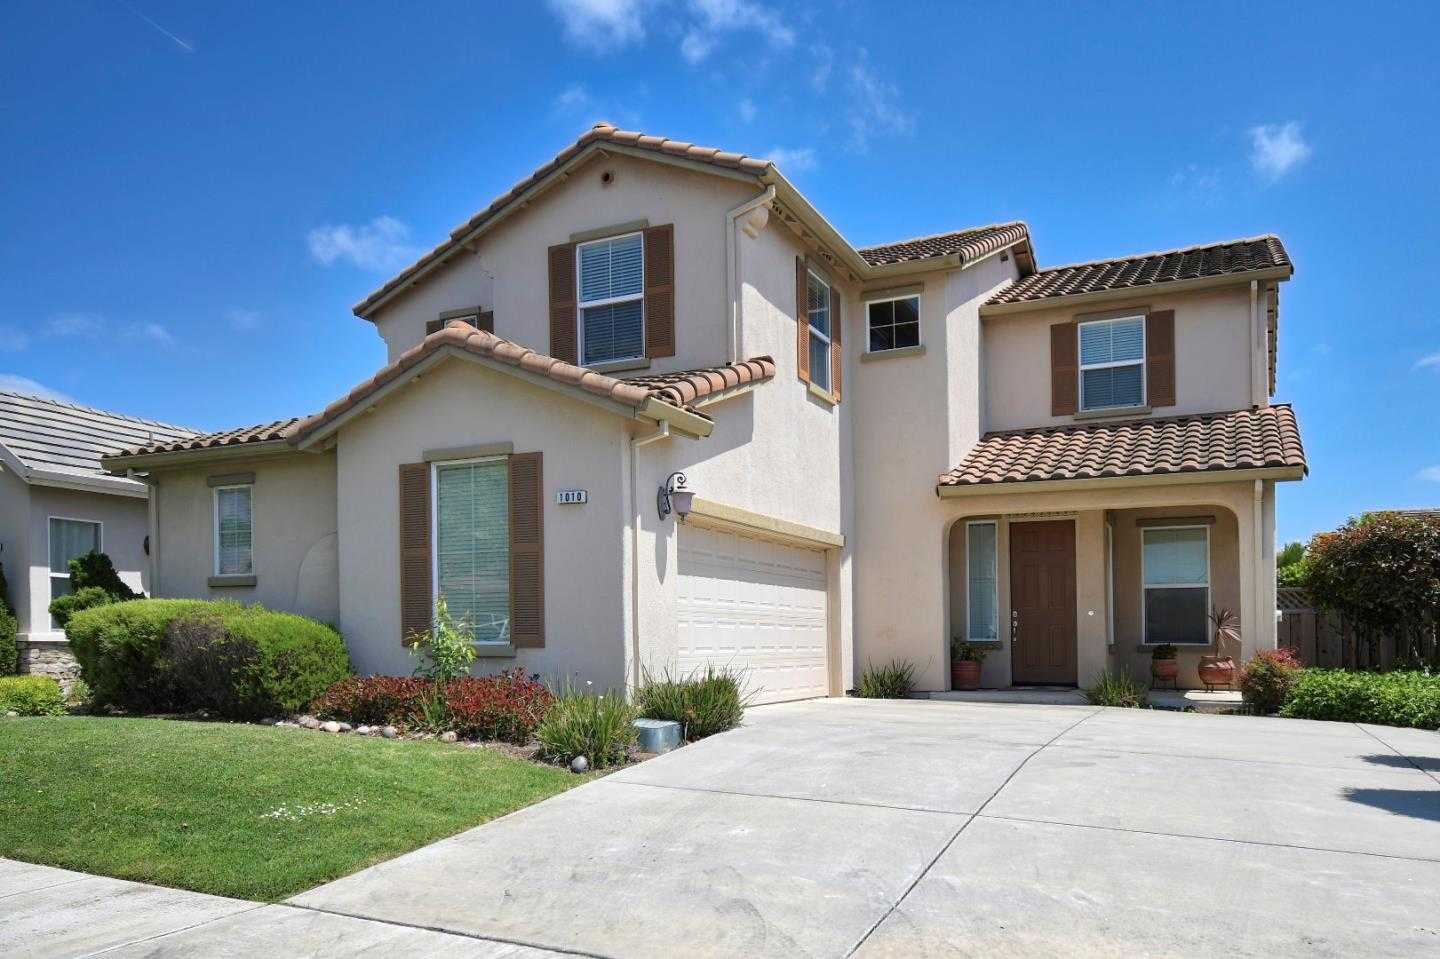 $595,000 - 4Br/3Ba -  for Sale in Salinas